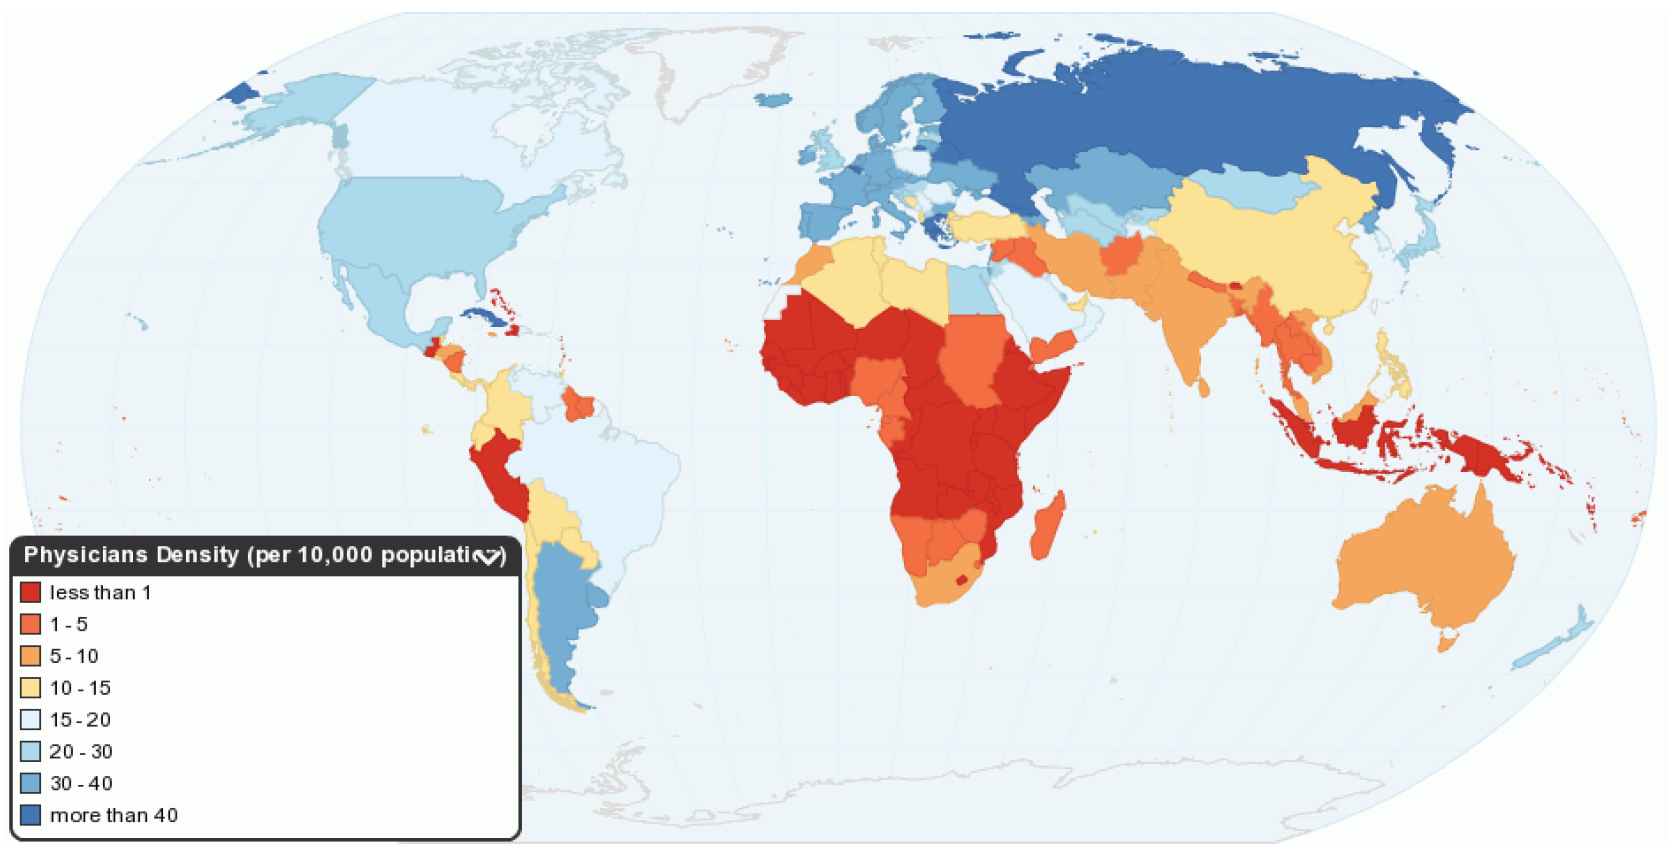 Global distribution of the health workforce (per 10,000 population)(3)